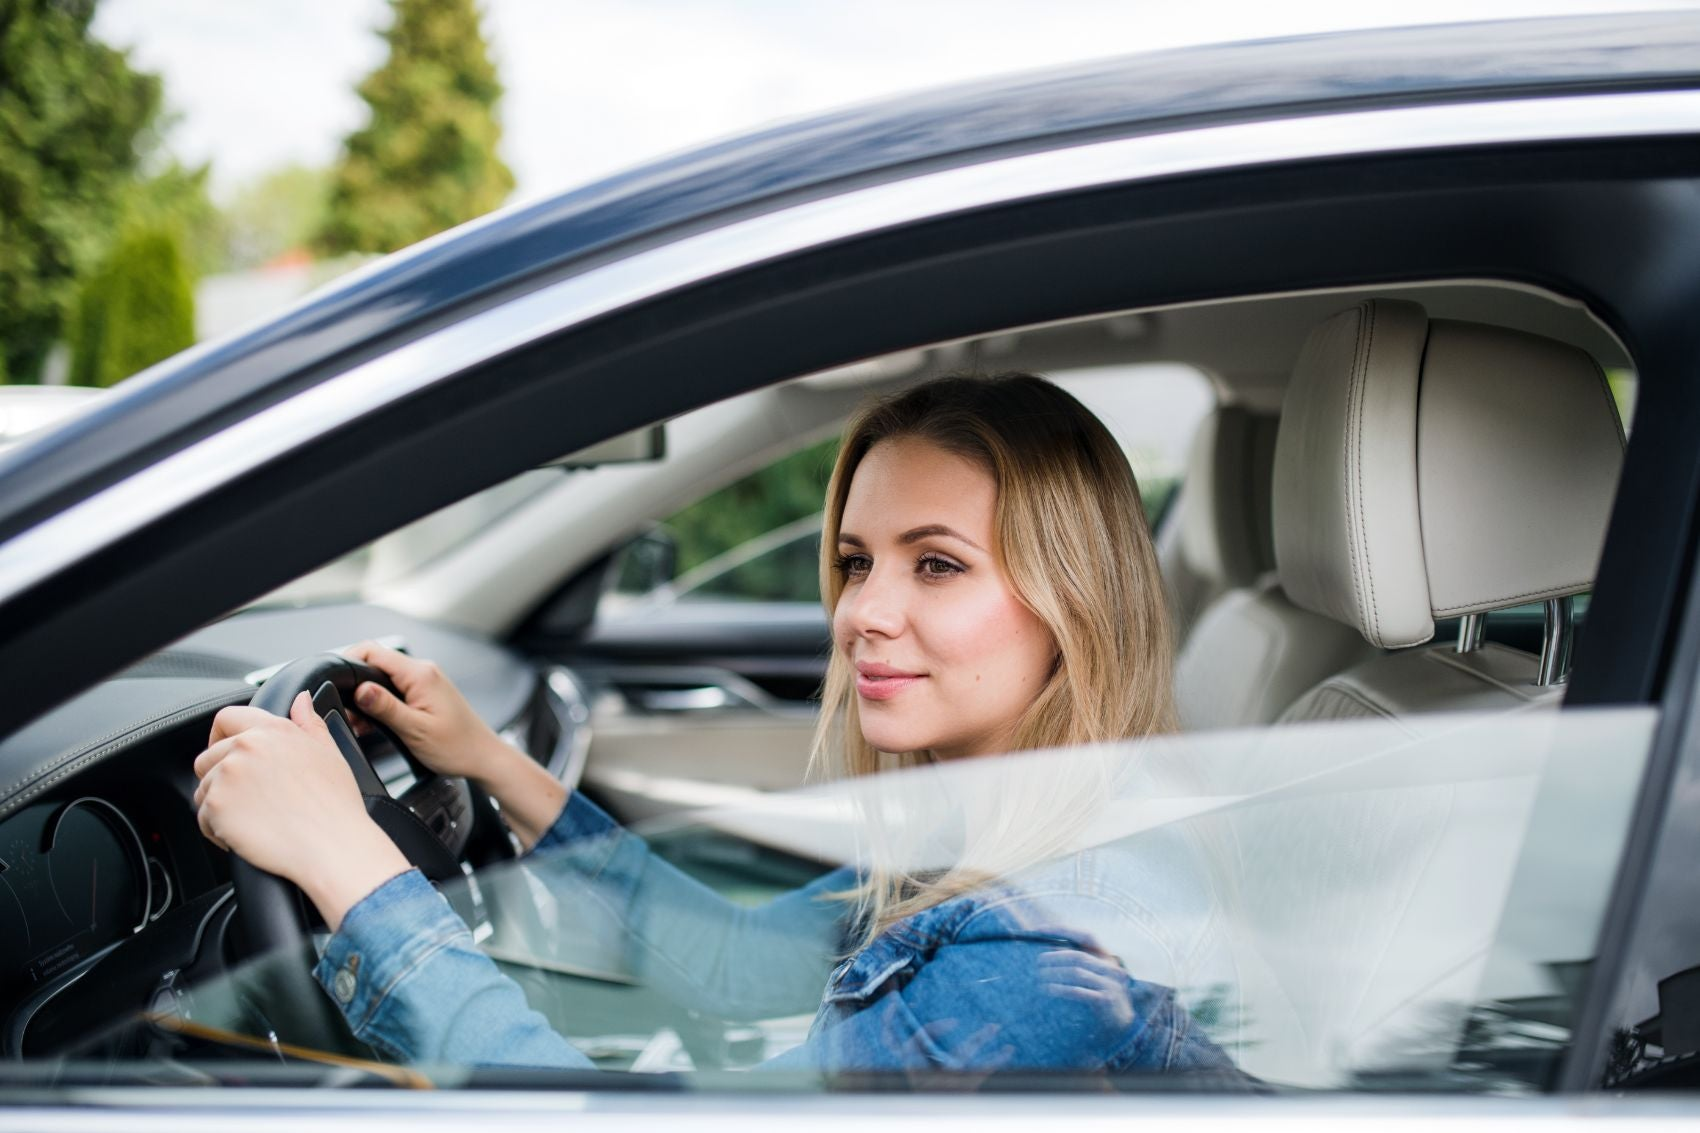 IIHS Study: Advanced Safety Features Offer Significant Benefits for Teen Drivers